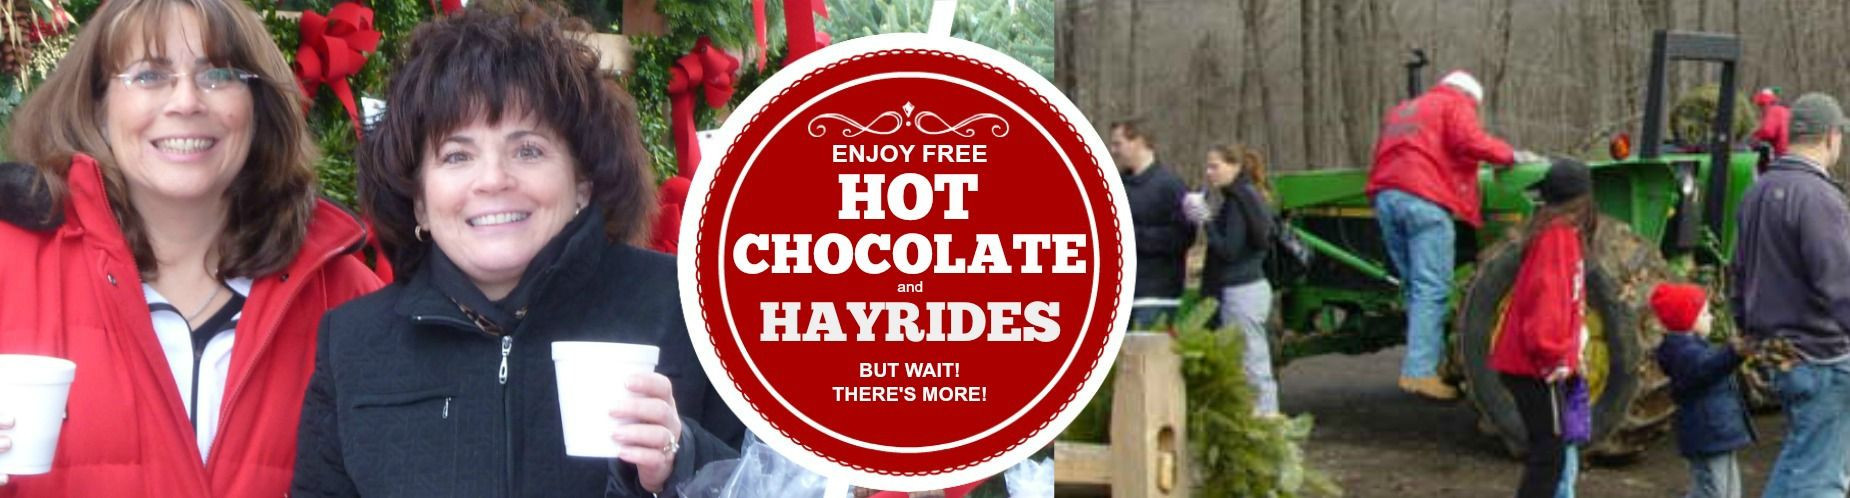 Free Hot Chocolate and Hayrides